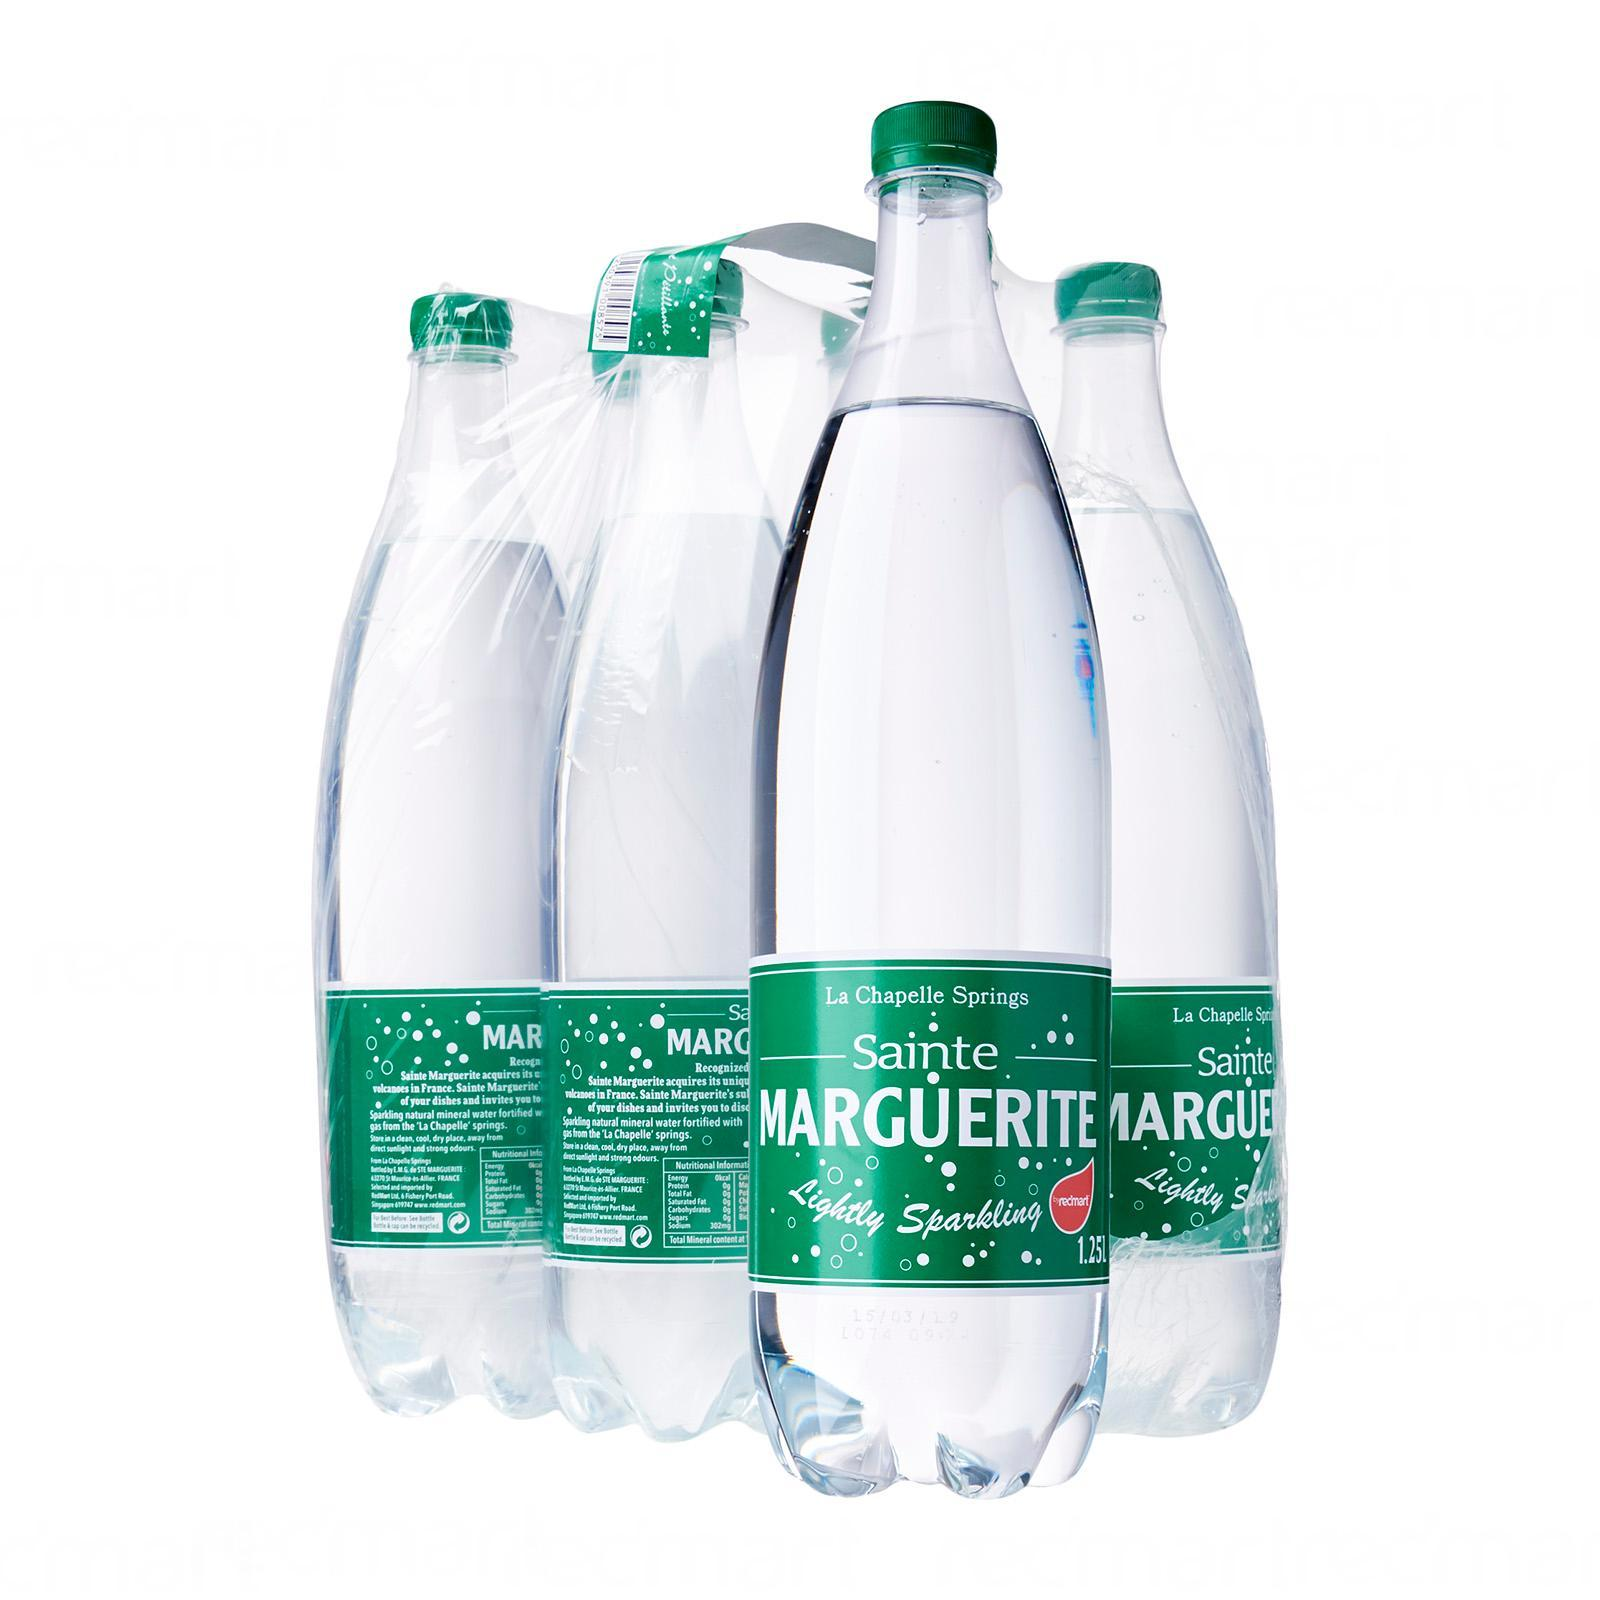 Redmart Sainte Marguerite Naturally Sparkling Mineral Water - Case By Redmart.